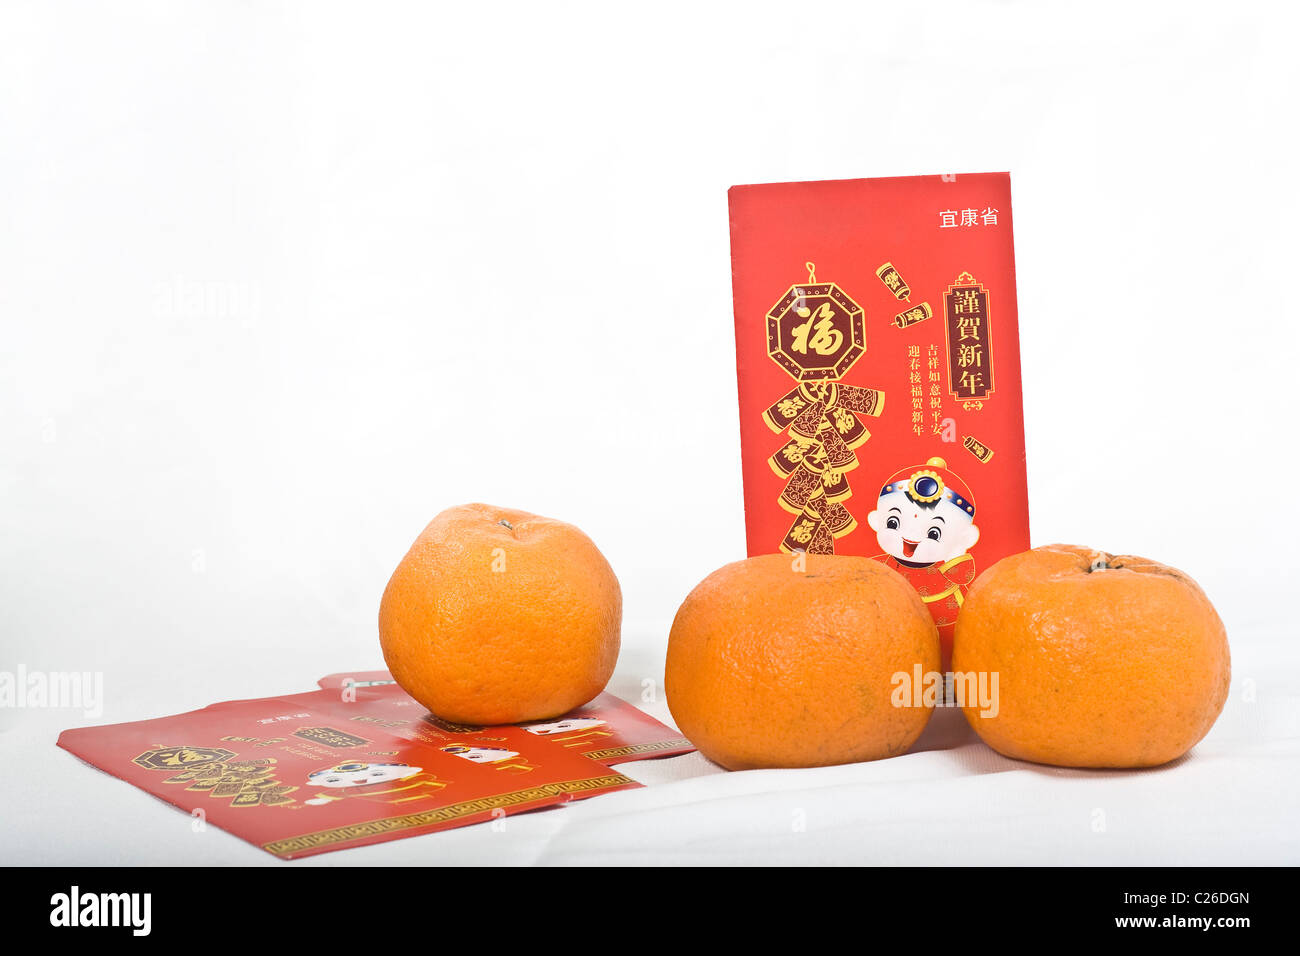 Mandarin oranges and Chinese New Year Red Packet - Stock Image